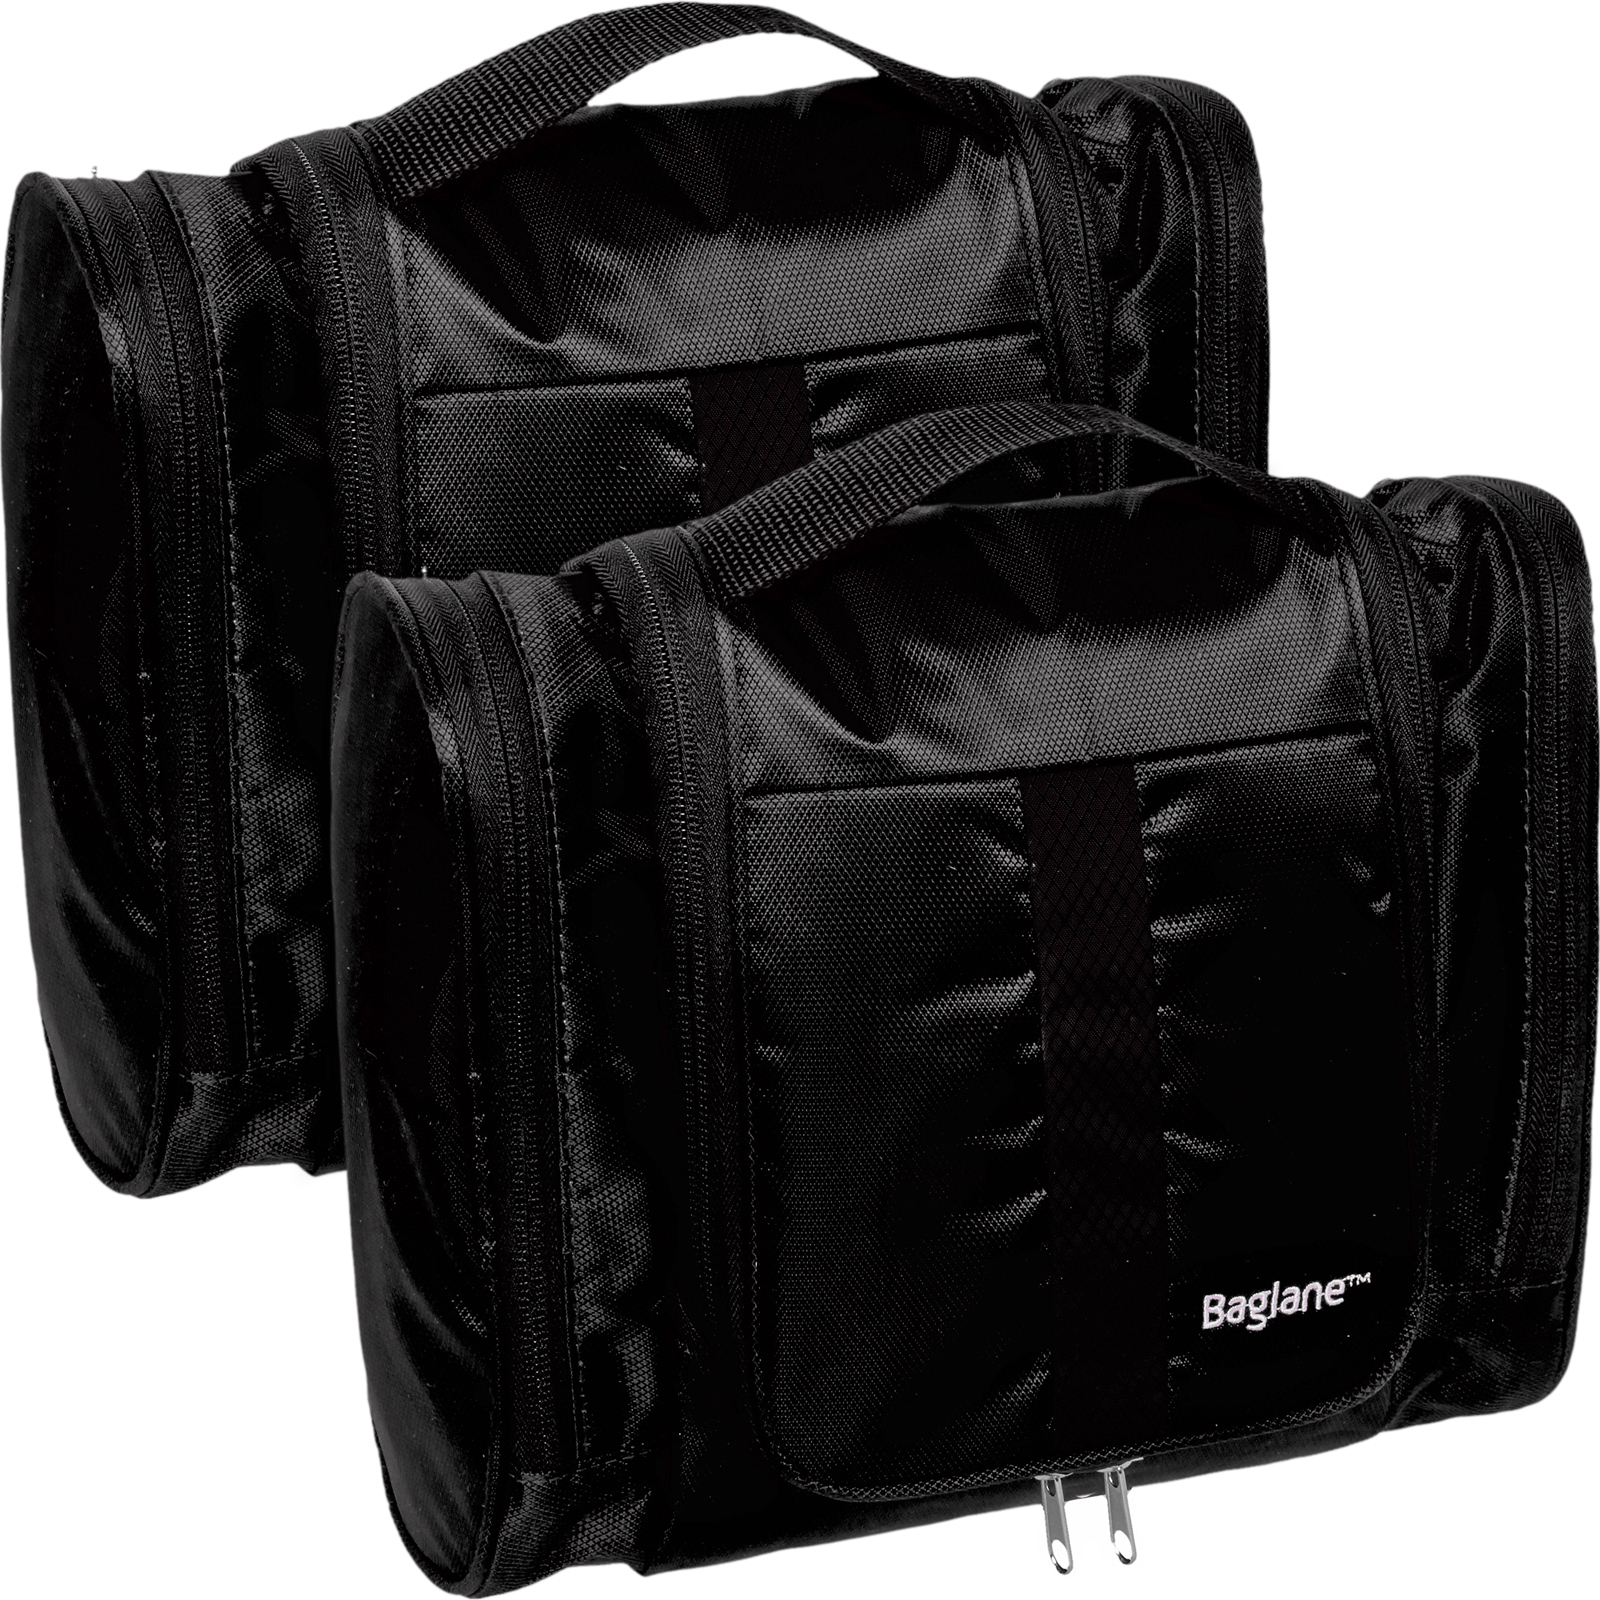 Baglane Black TechLife Nylon Luggage Travel Hanging Toiletry Bag - 2 Pack NEW